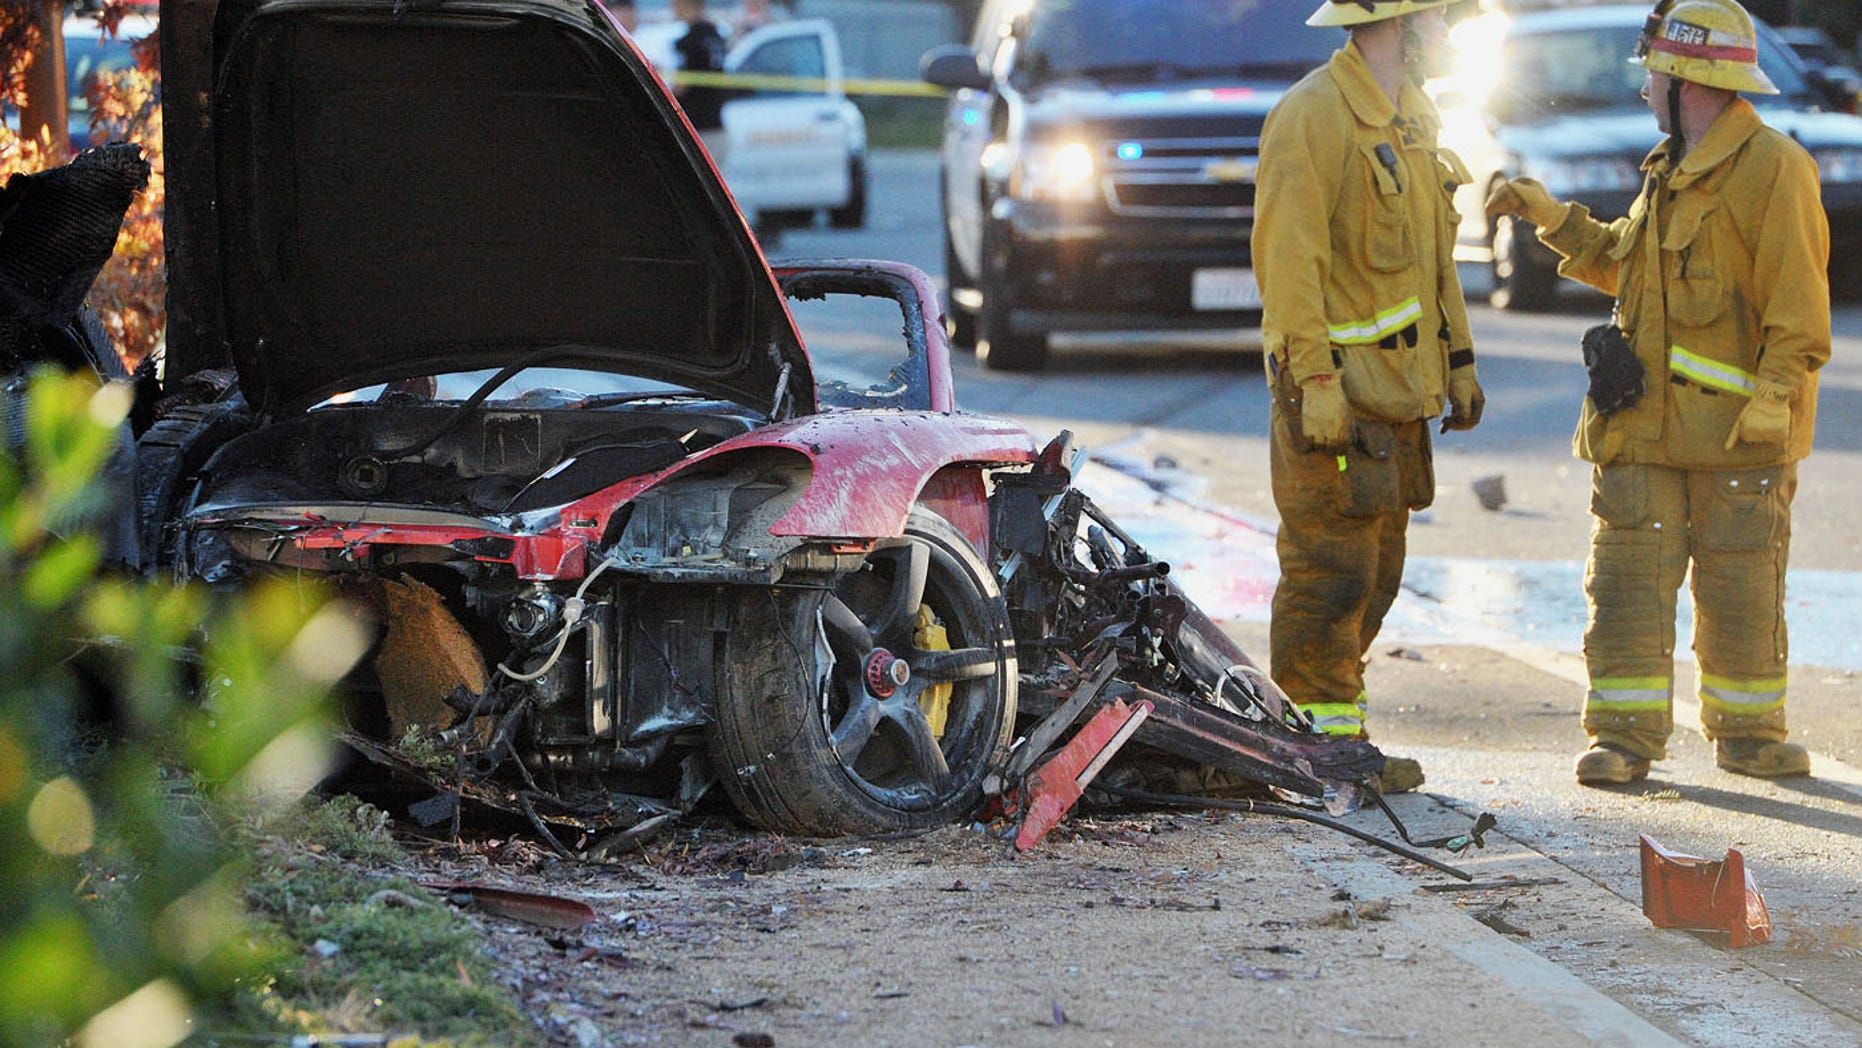 November 30, 2013. Sheriff''s deputies work near the wreckage of a Porsche that crashed into a light pole on Hercules Street near Kelly Johnson Parkway in Valencia, Calif.. A publicist for actor Paul Walker says the star  died in the crash north of Los Angeles.